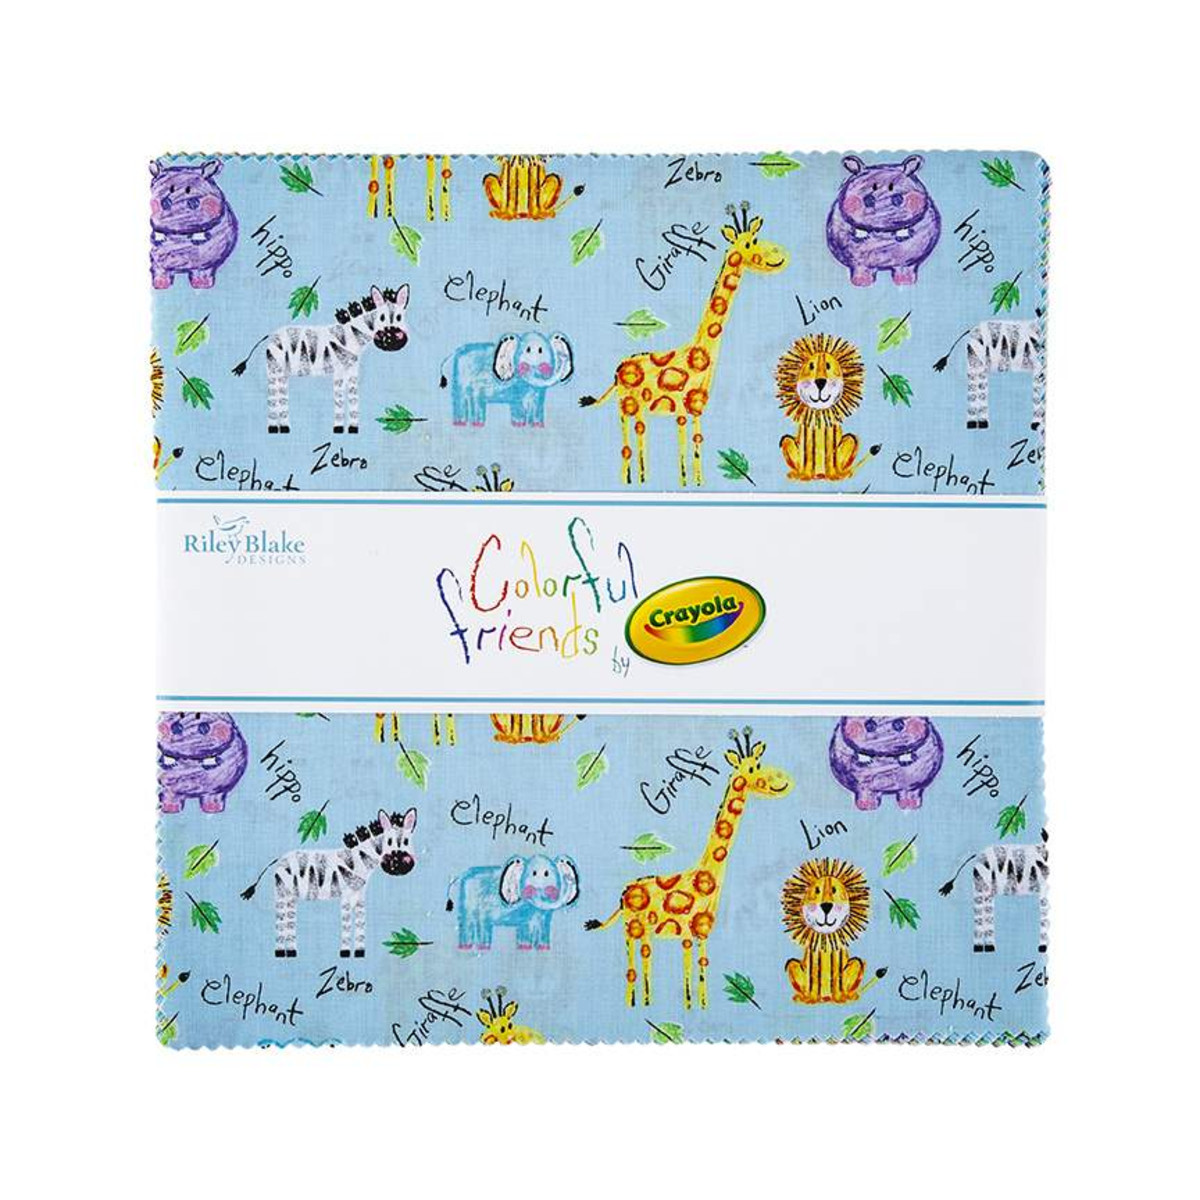 Riley Blake Layer Cake - Colorful Friends